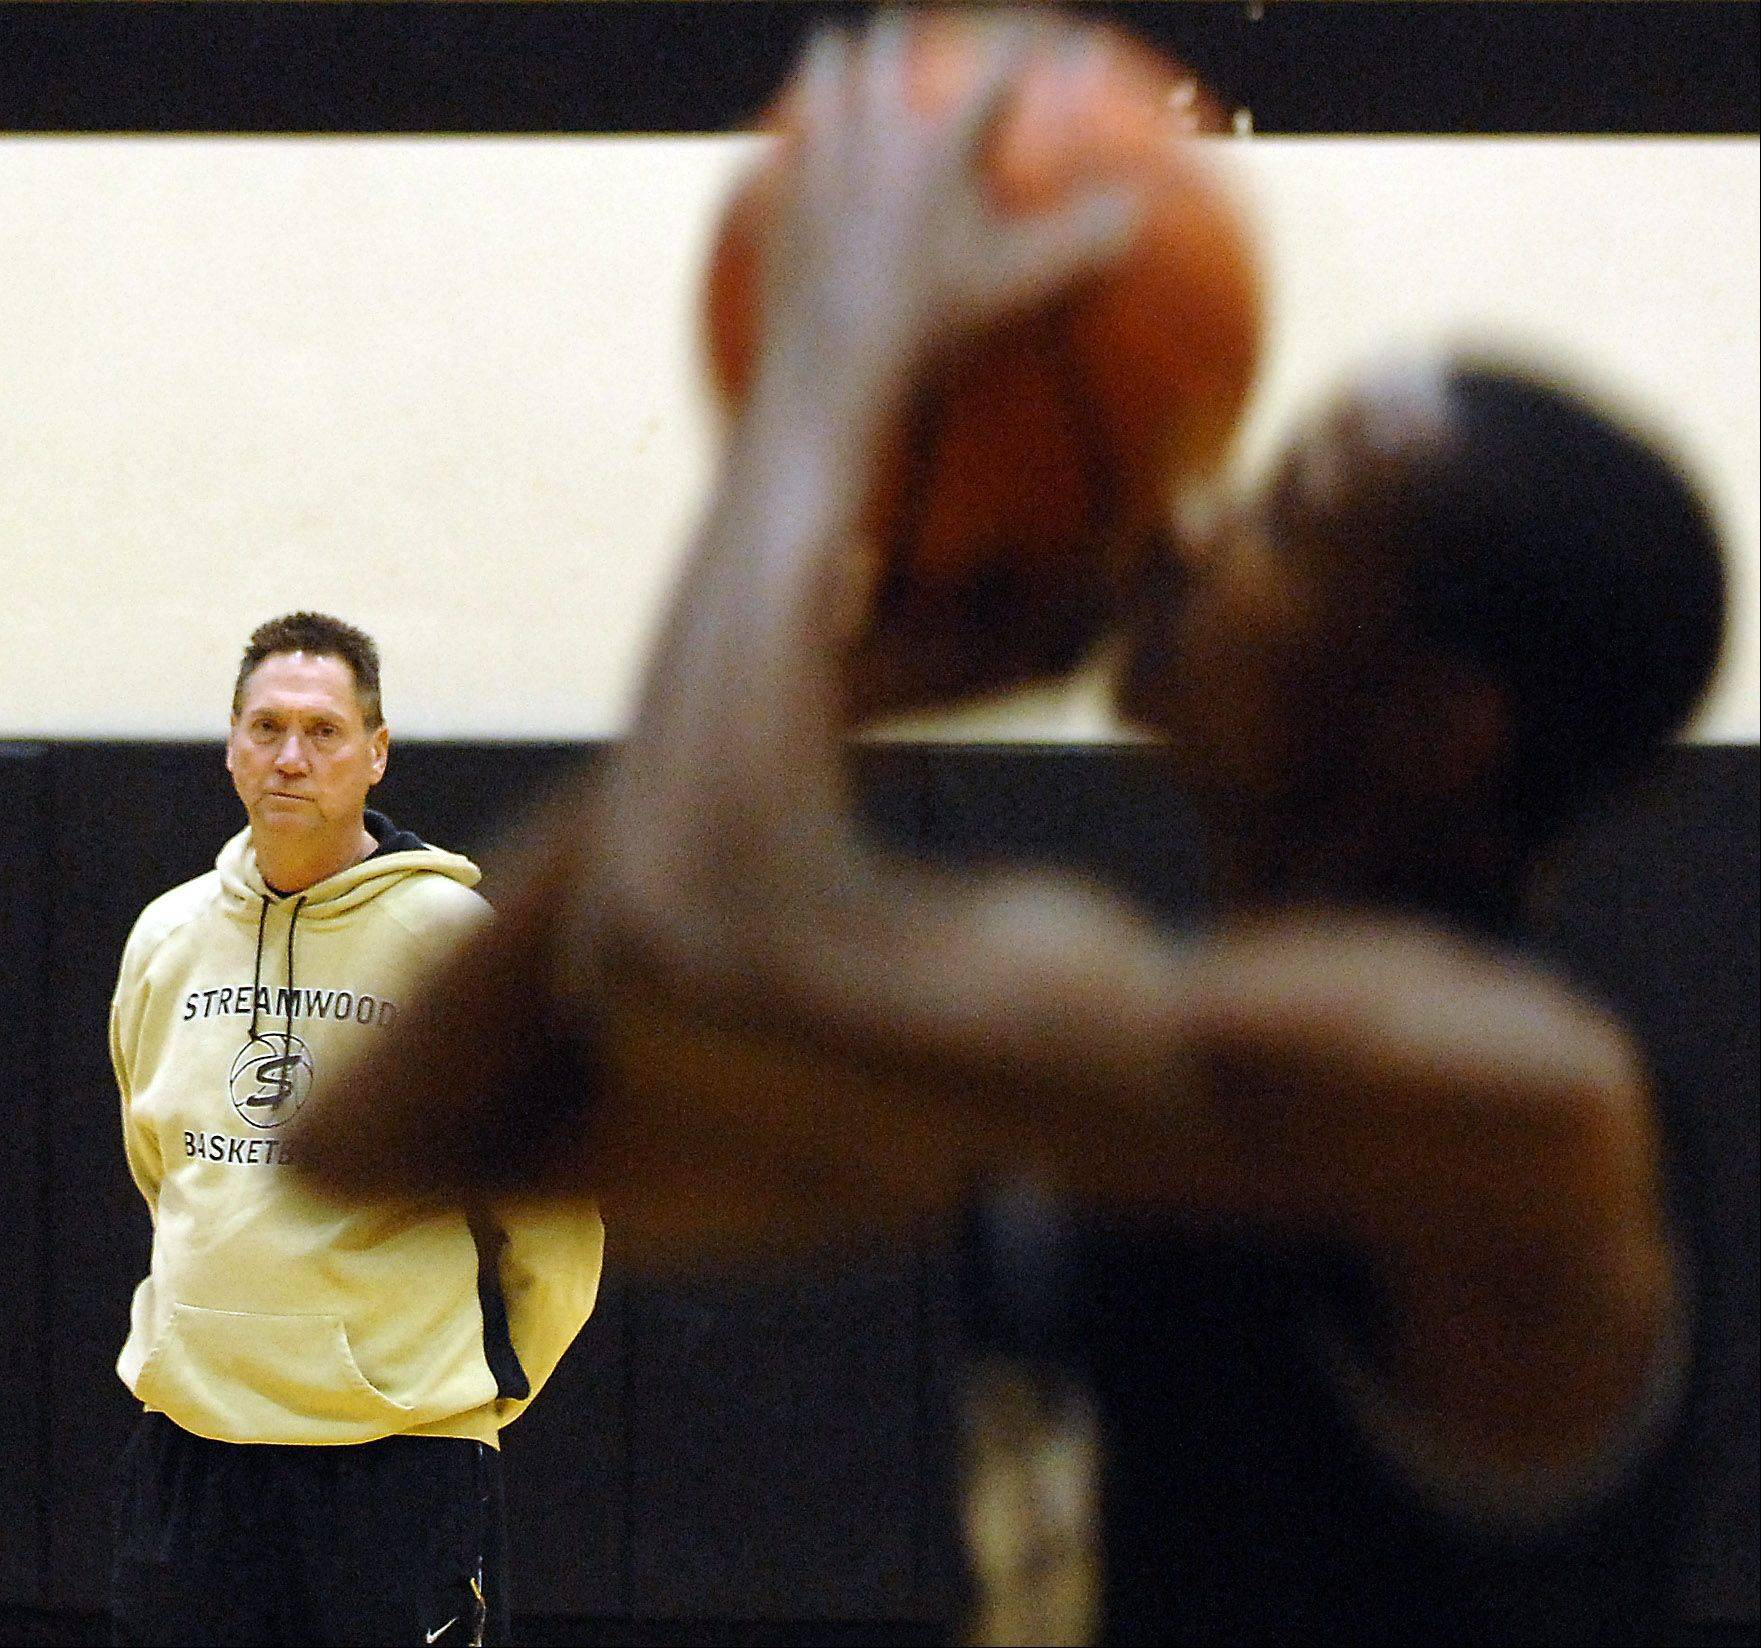 Streamwood boys basketball coach Tim Jones will be retiring after this year.